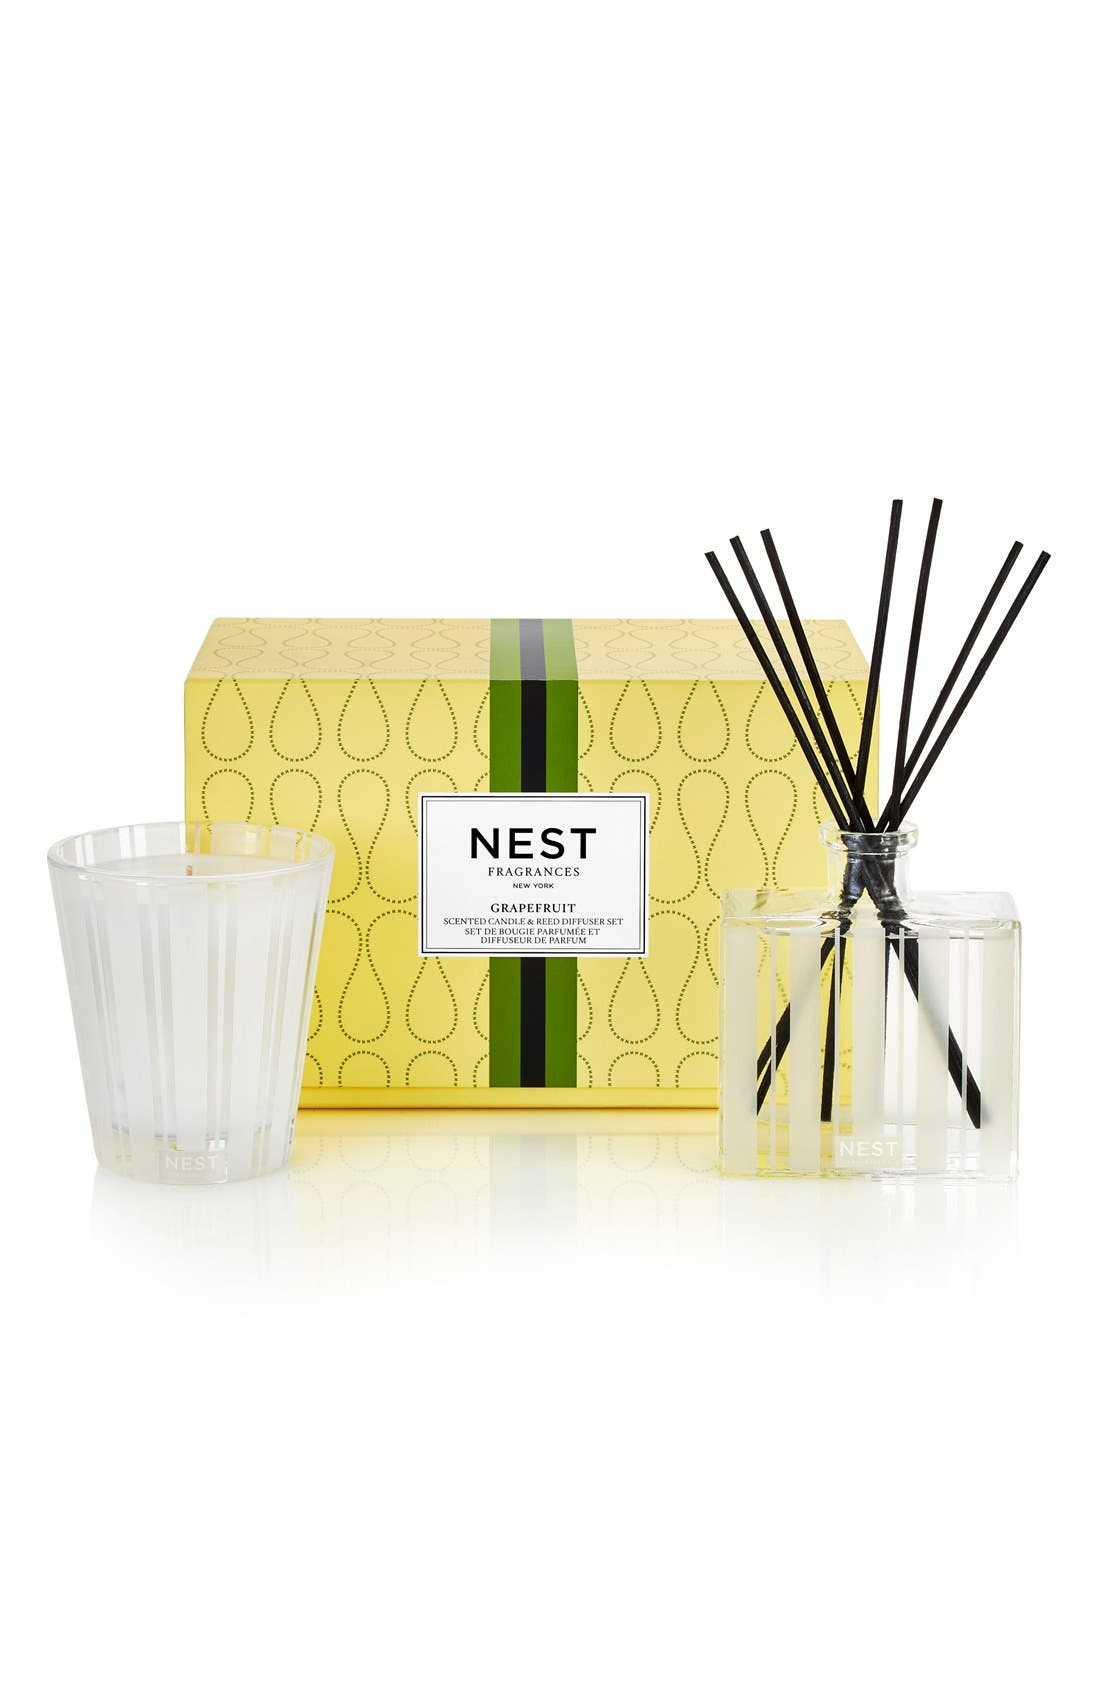 NEST FRAGRANCES 'Grapefruit' Reed Diffuser & Candle Set, Main, color, 000